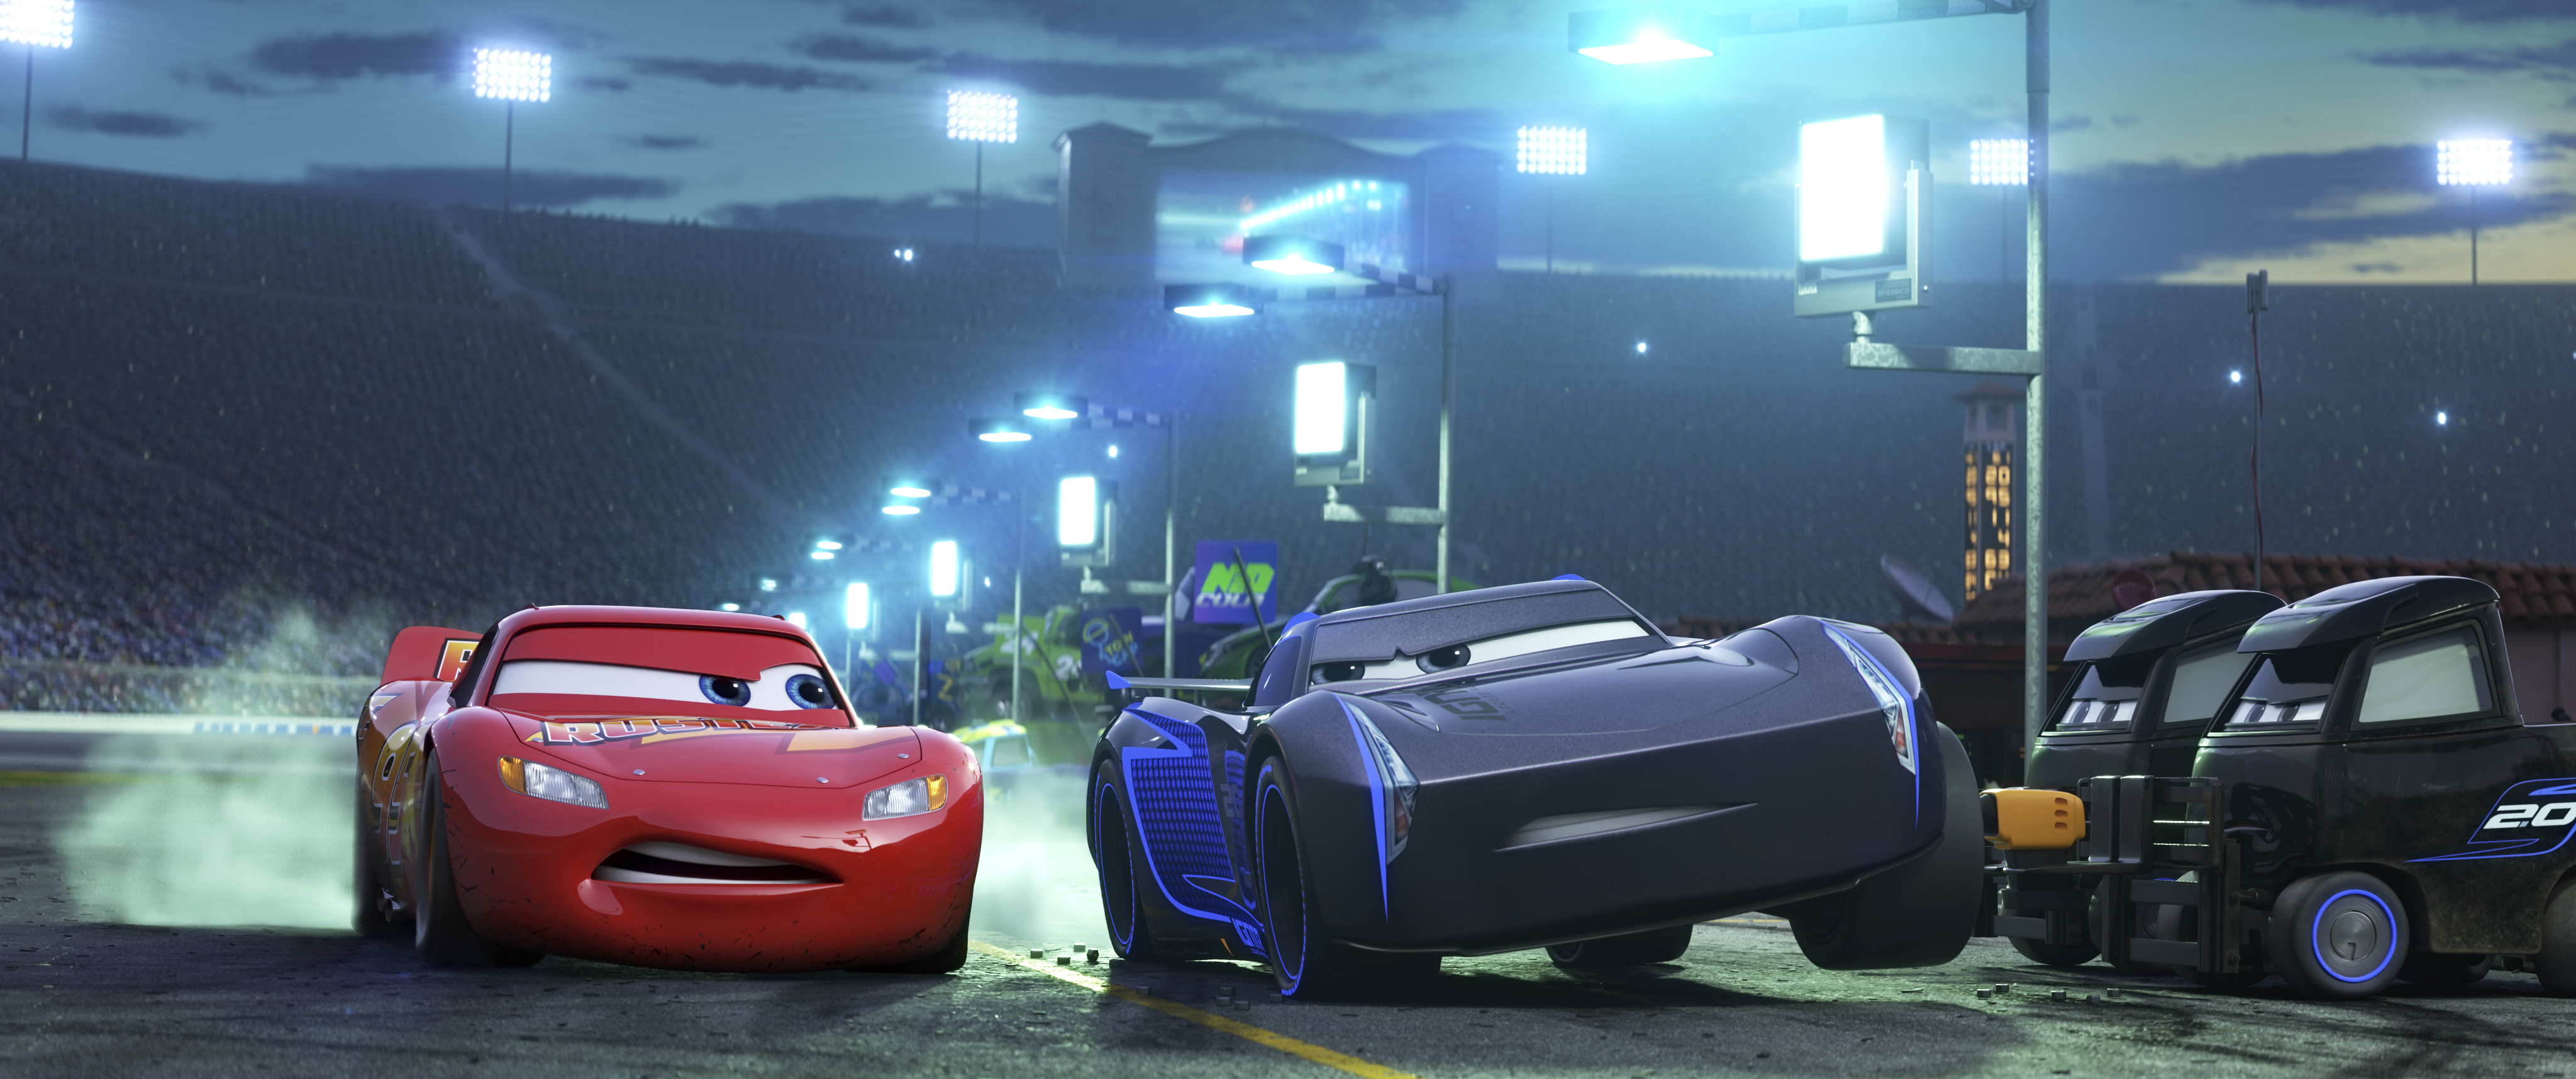 Cars 3 covers familiar ground